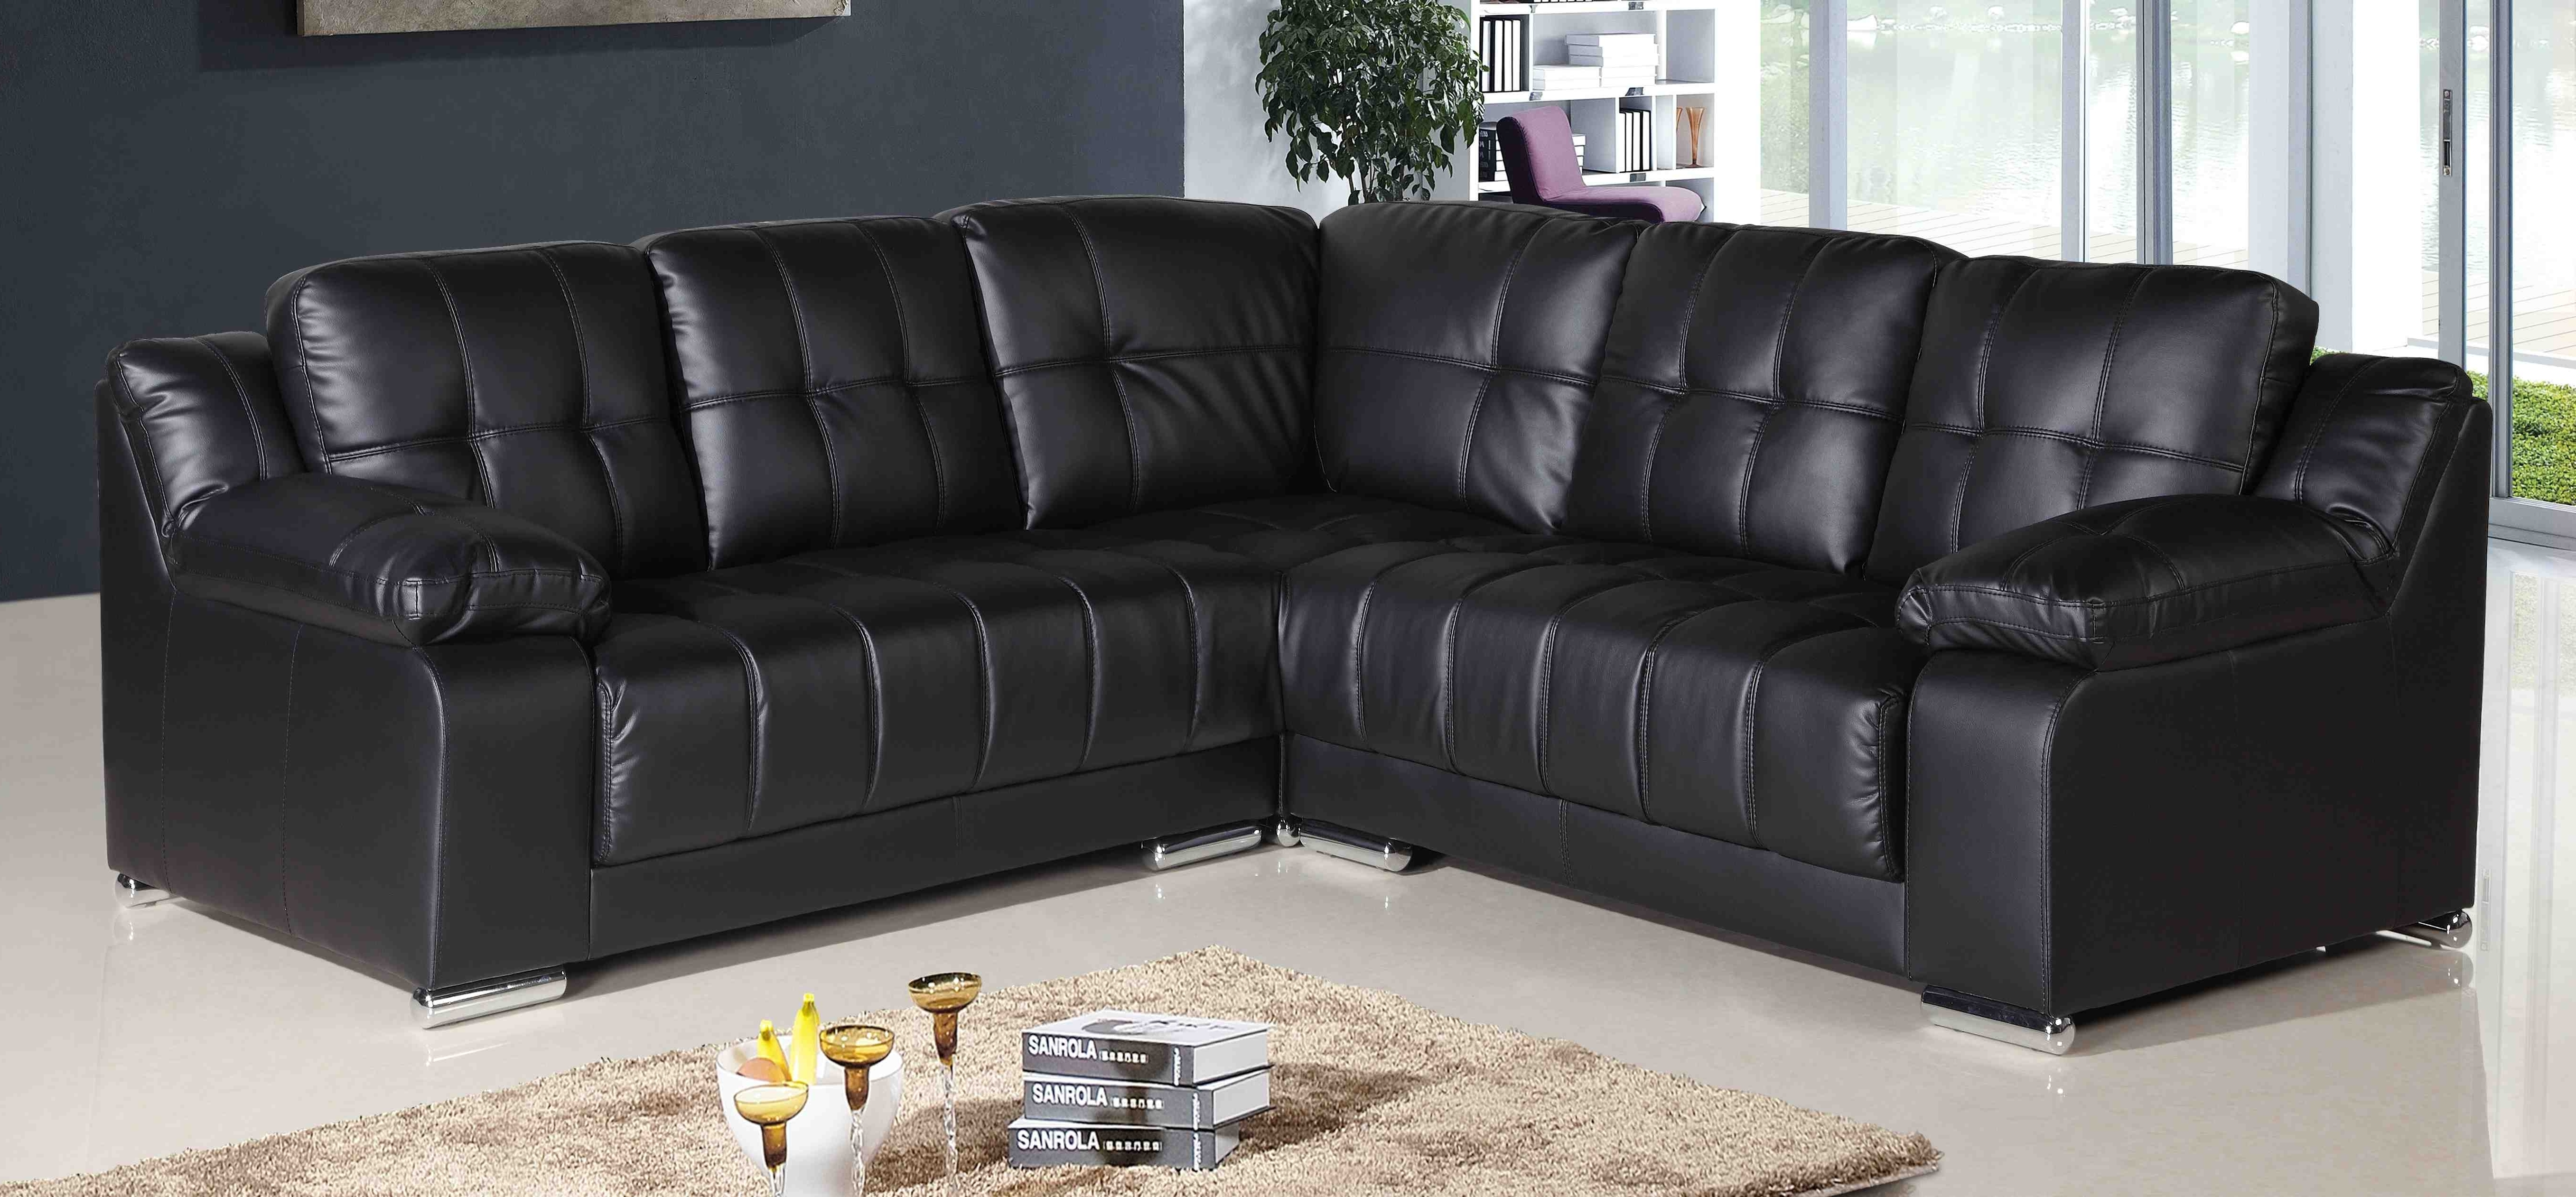 Most Recent Extra Long Leather Corner Sofas • Leather Sofa With Leather Corner Sofas (View 8 of 15)